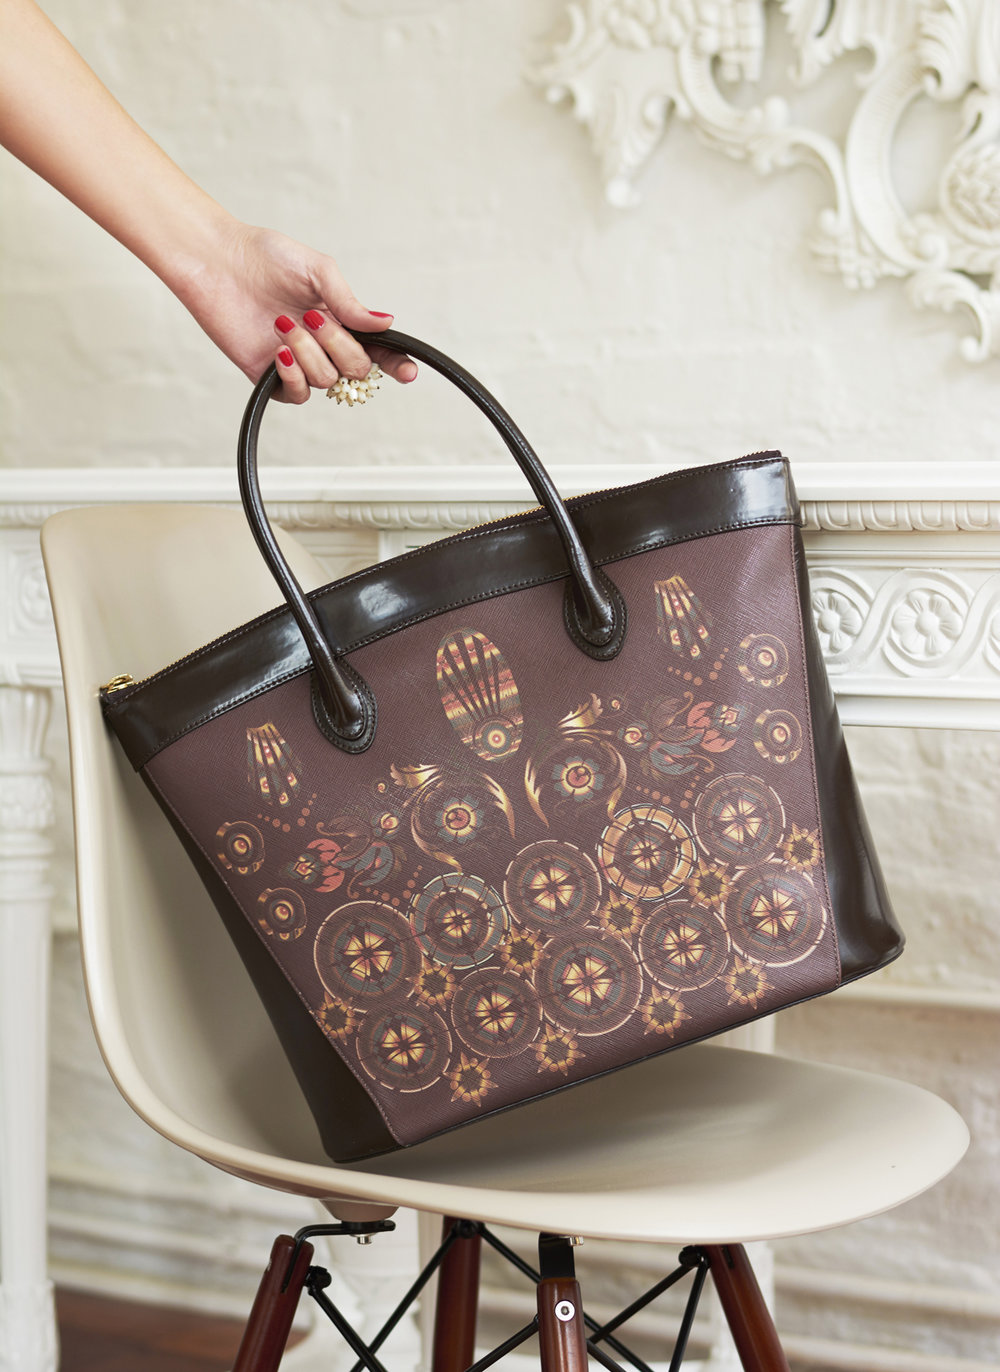 Tote in chocolate brown